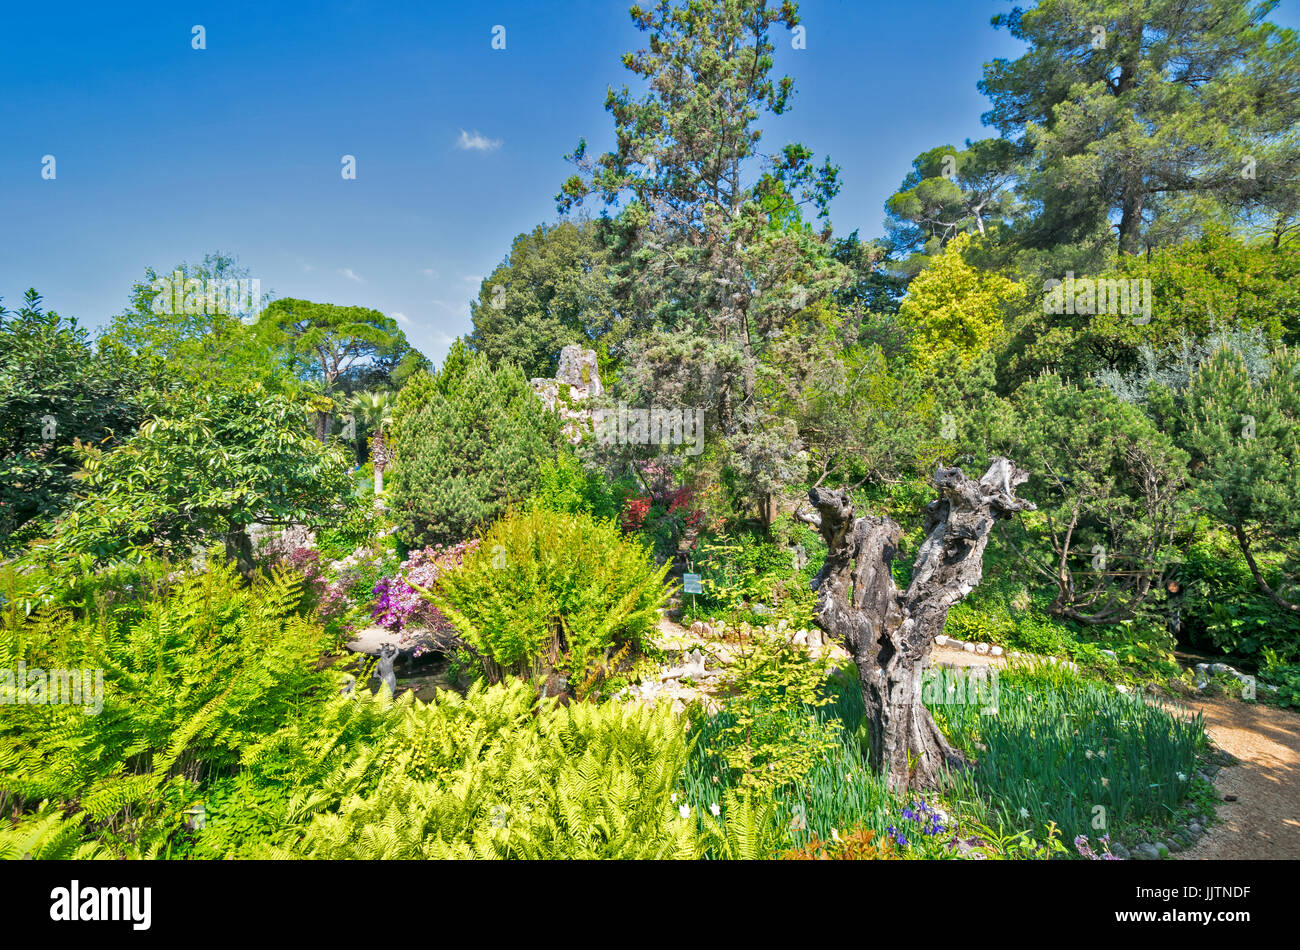 LAKE GARDA ITALY GARDONE THE HELLER GARDEN WITH FERNS AND CONIFER TREES - Stock Image